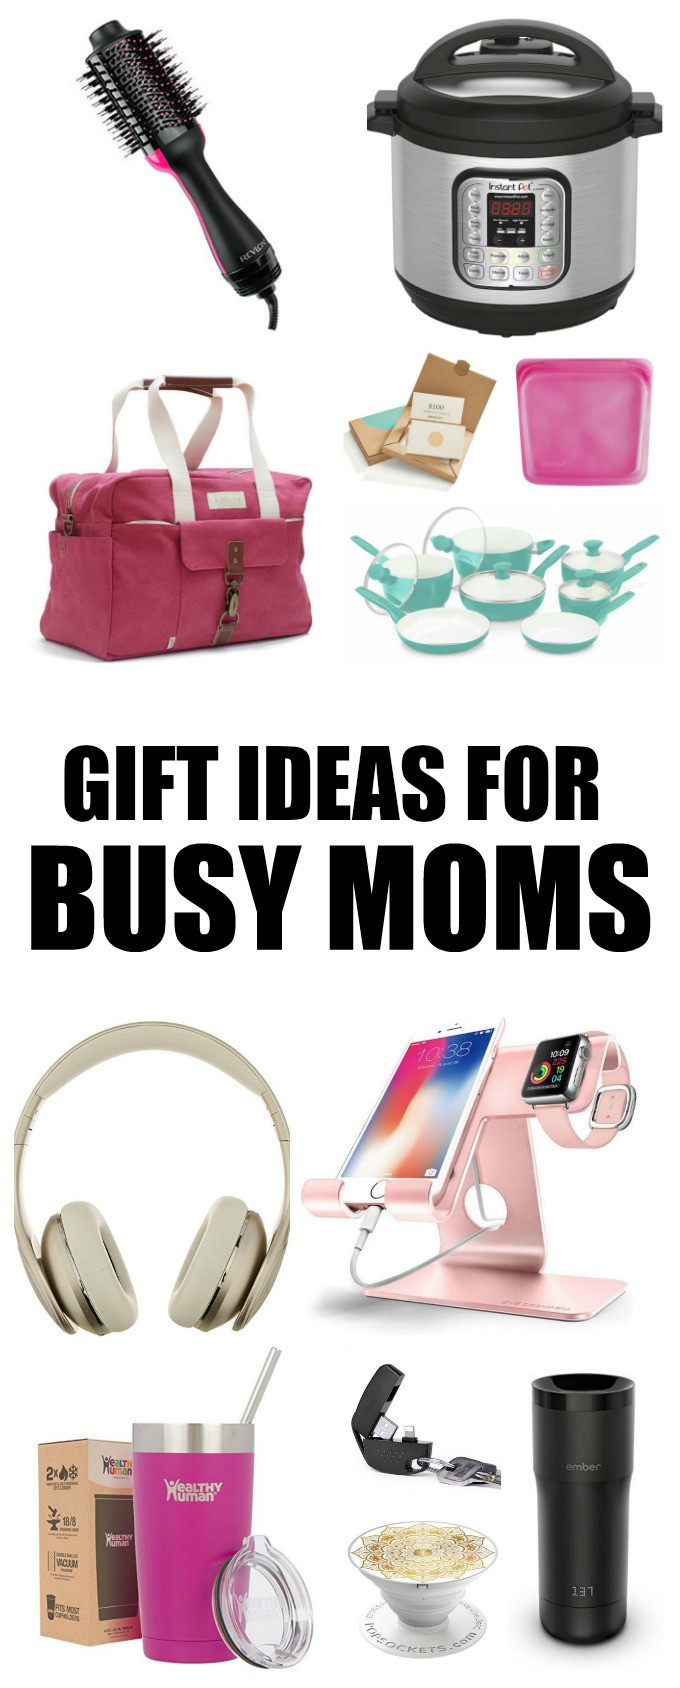 Best ideas about Christmas Gift Ideas For New Moms . Save or Pin Gift Ideas For Busy Moms Now.